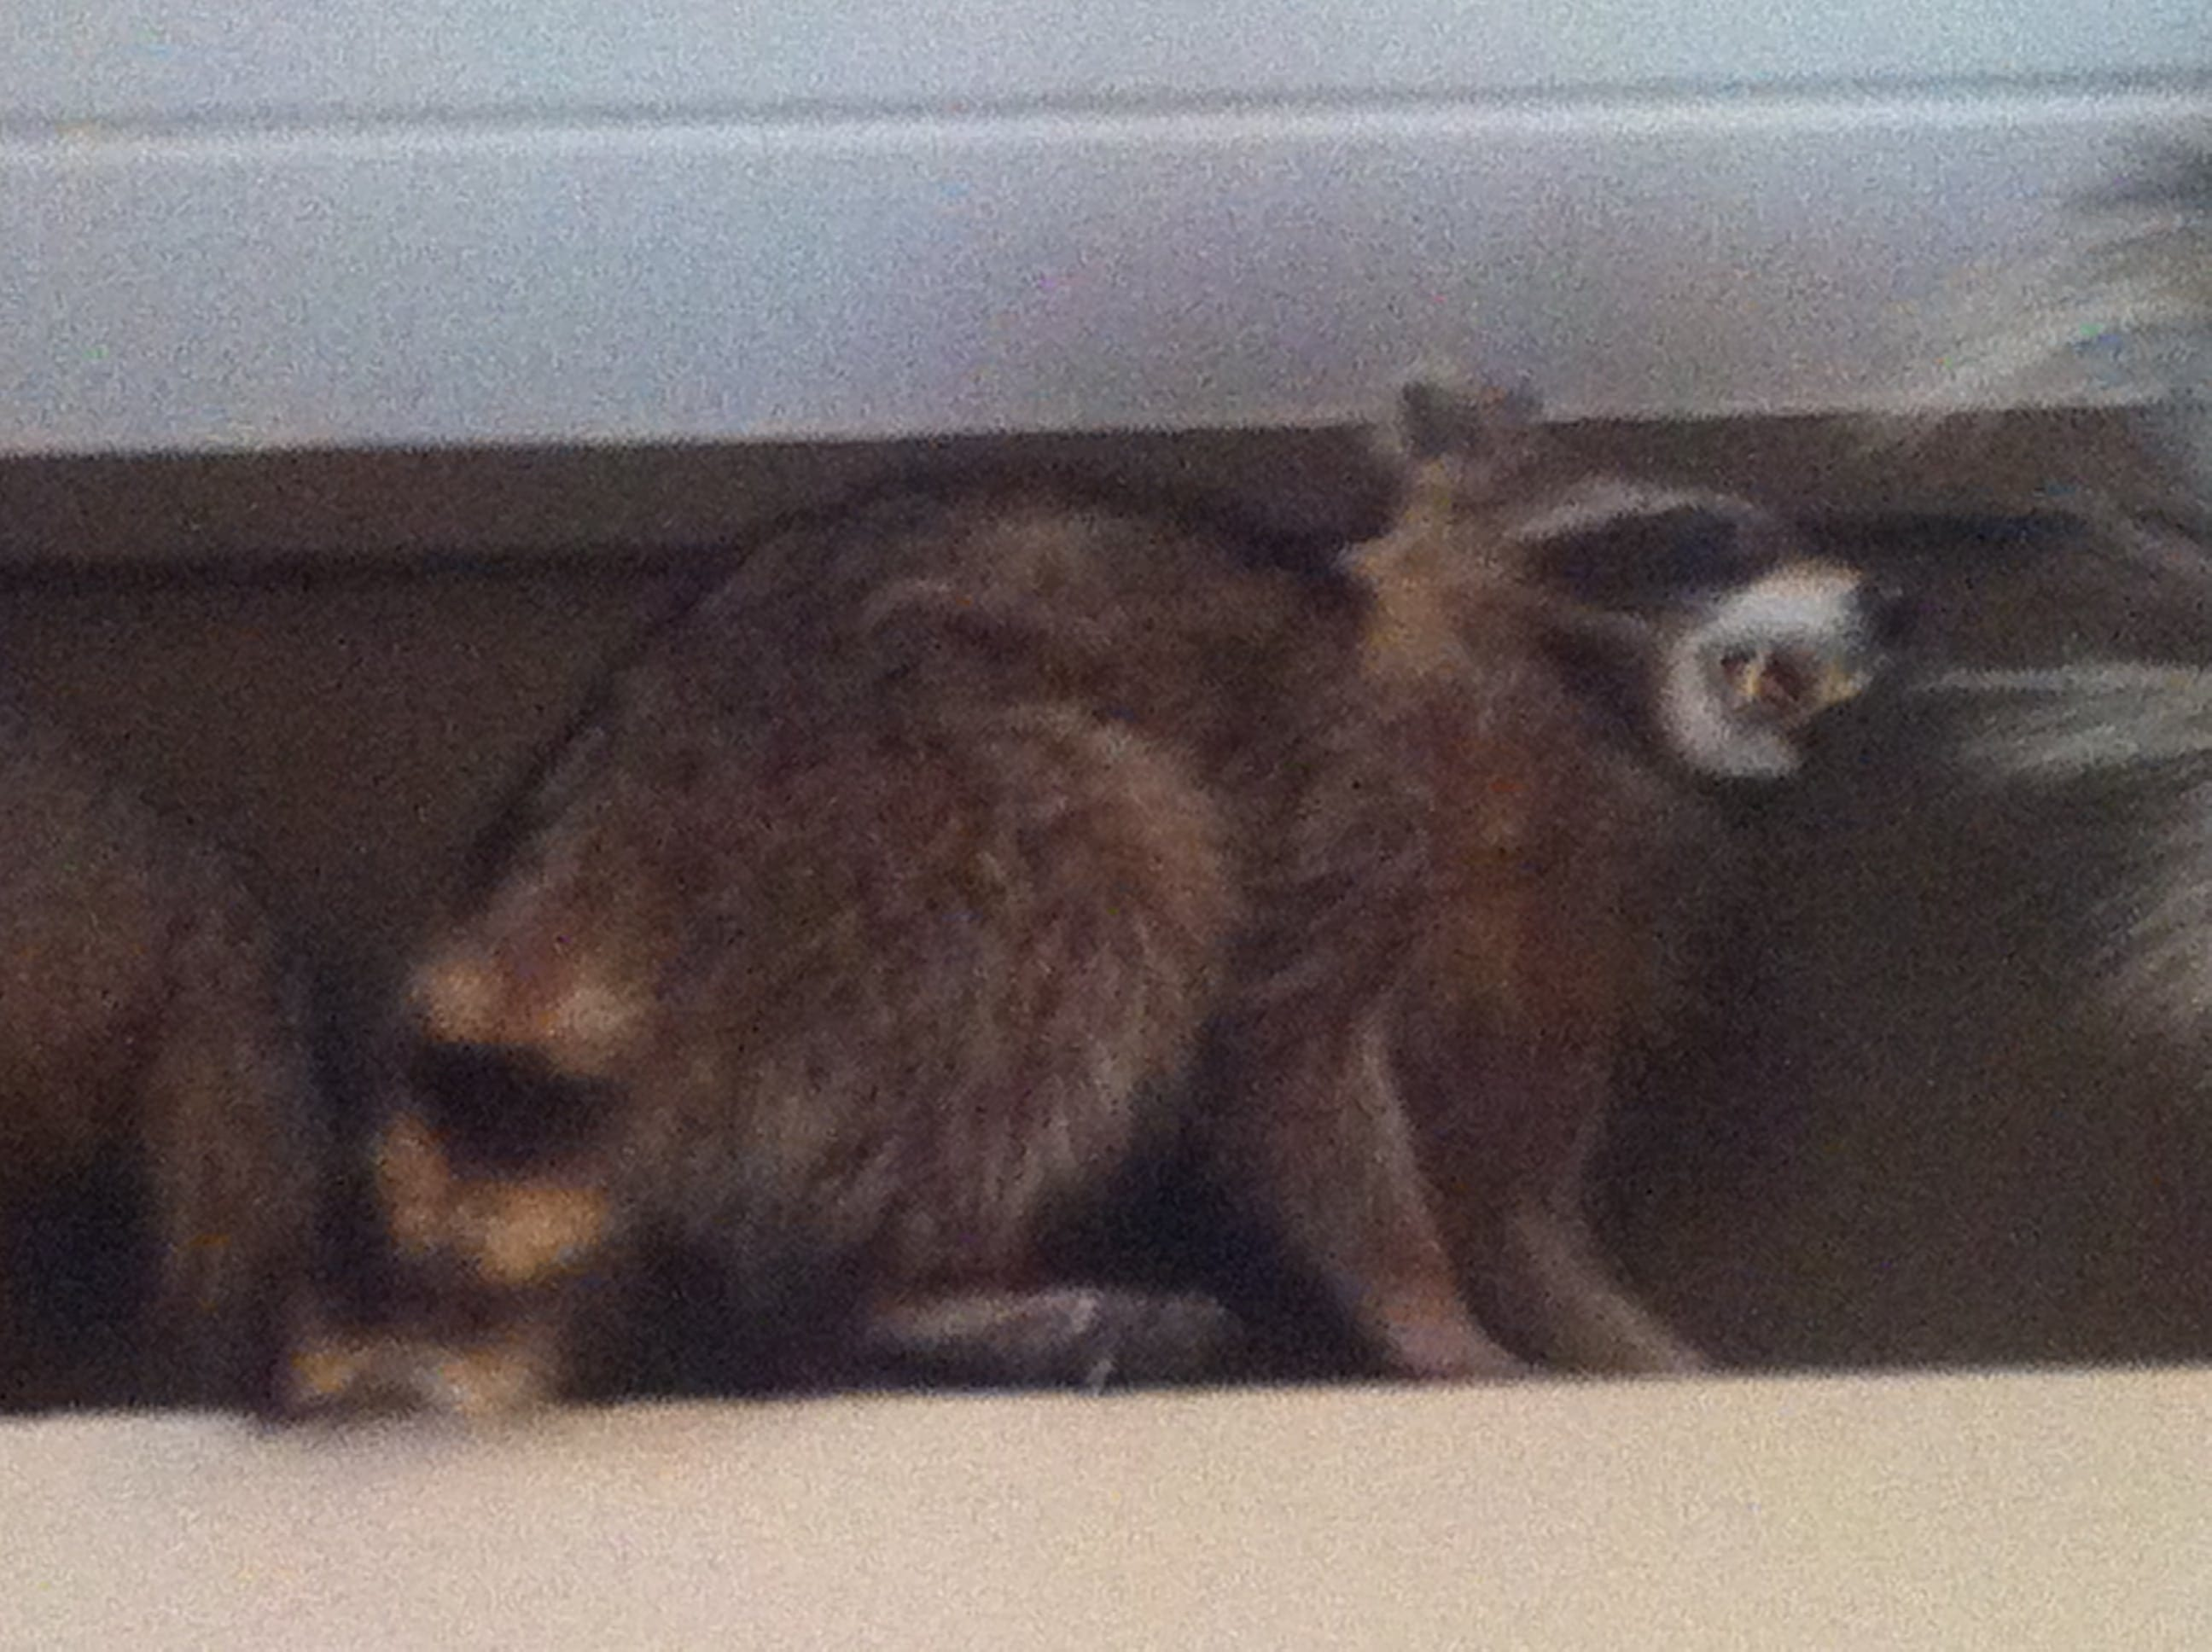 GA House Bill 160 Could Lift Ban on Trapping Raccoons